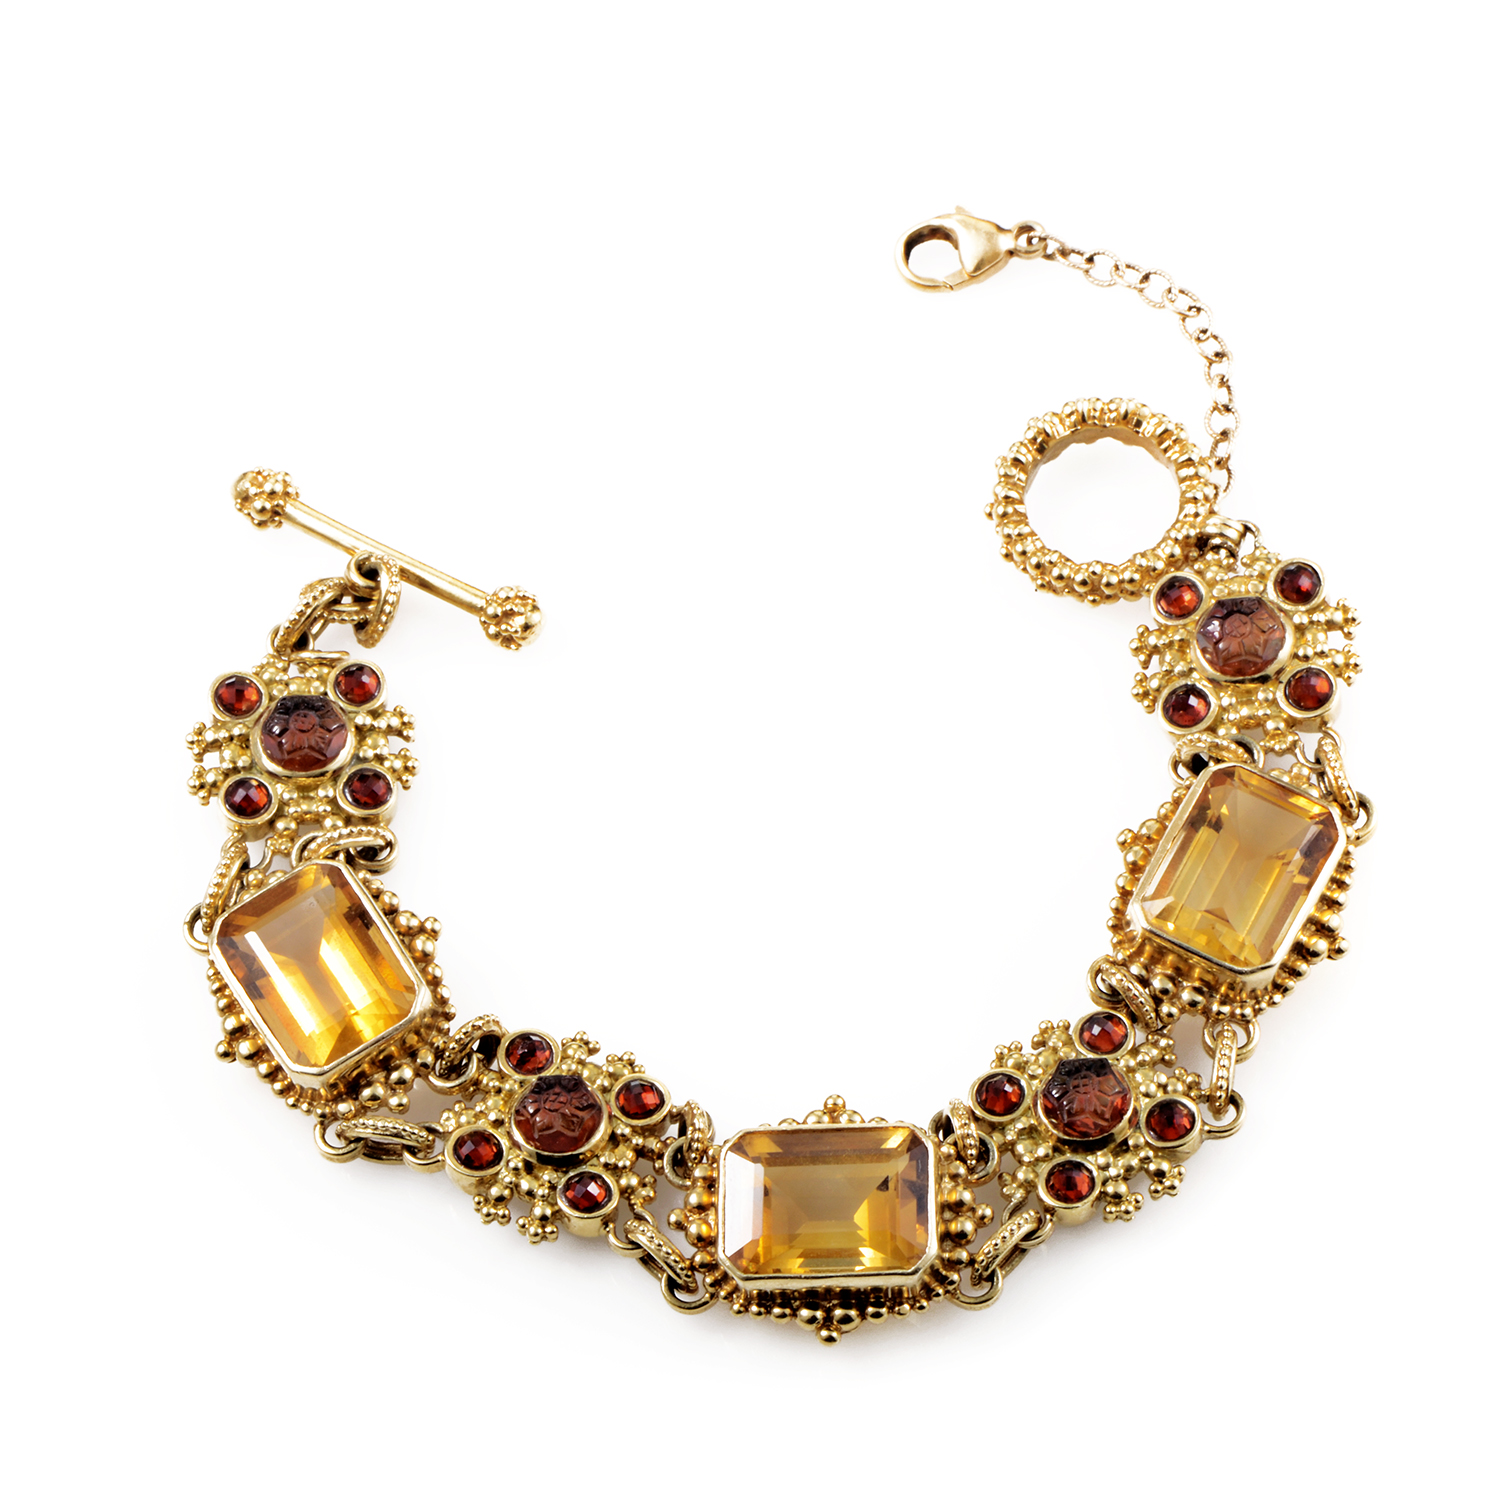 Stephen Dweck 18K Yellow Gold Garnet & Citrine Toggle Bracelet